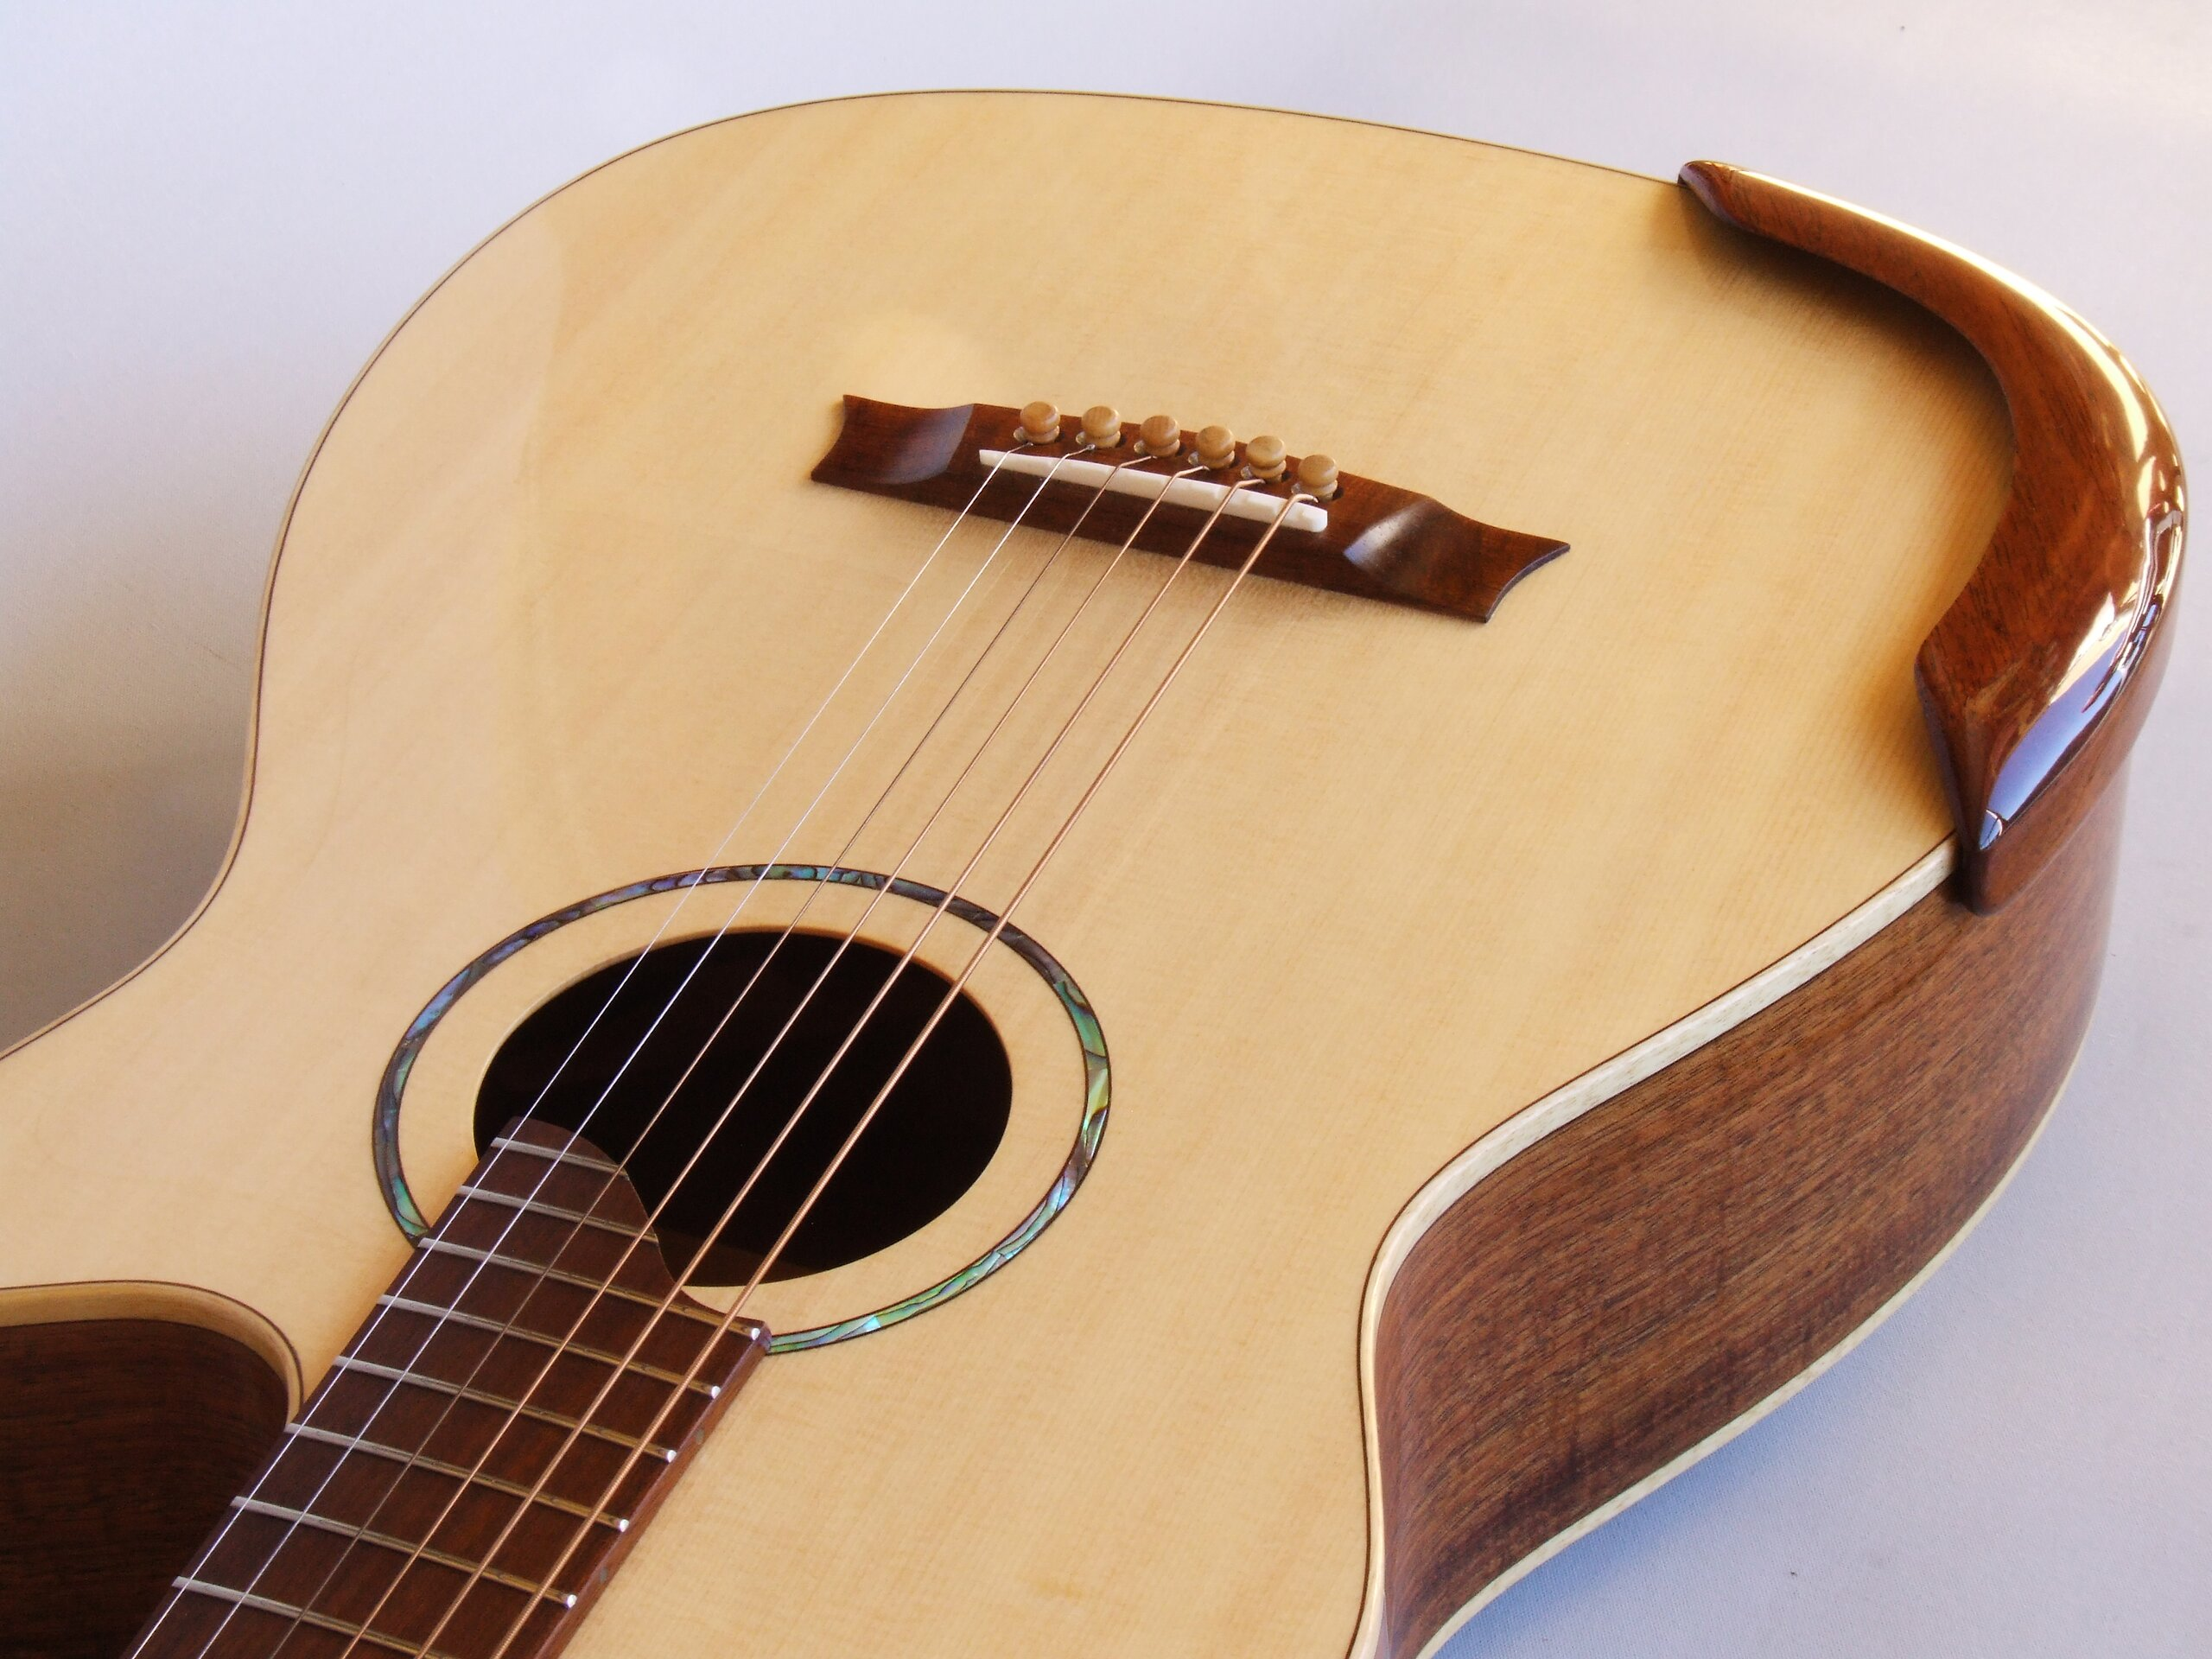 Small body steel string cutaway guitar with arm rest